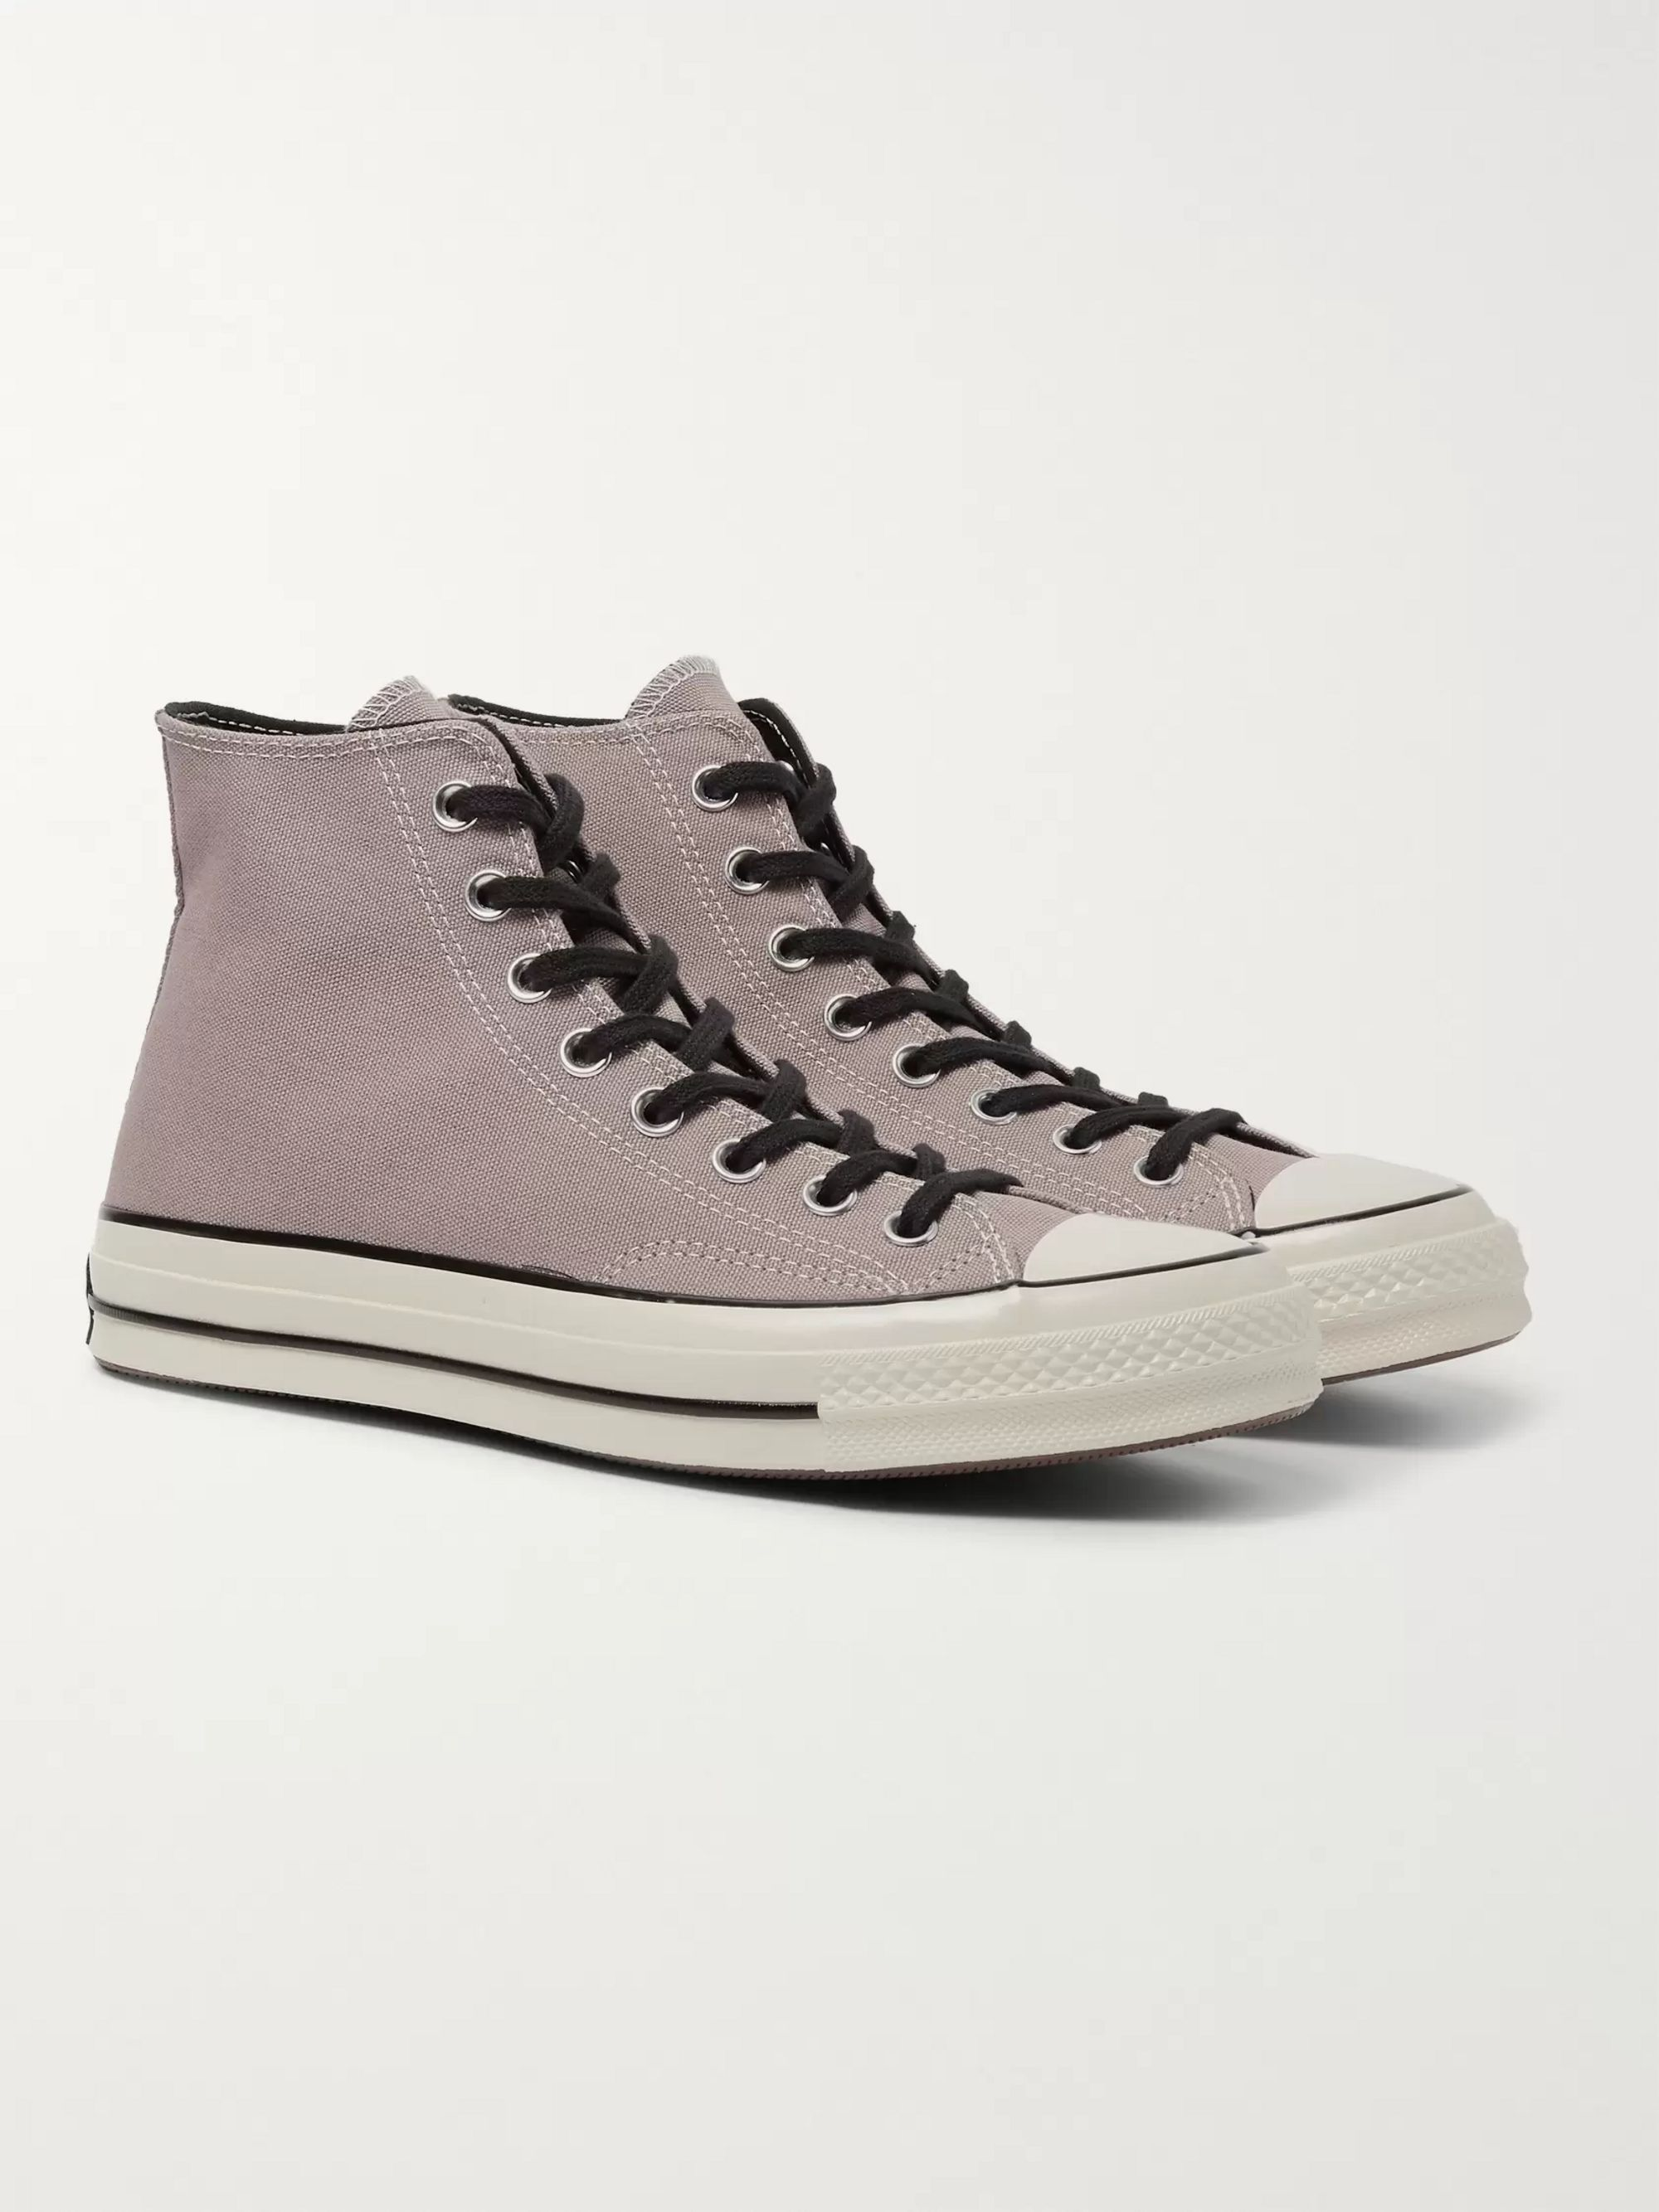 1970s Chuck Taylor All Star Canvas High Top Sneakers